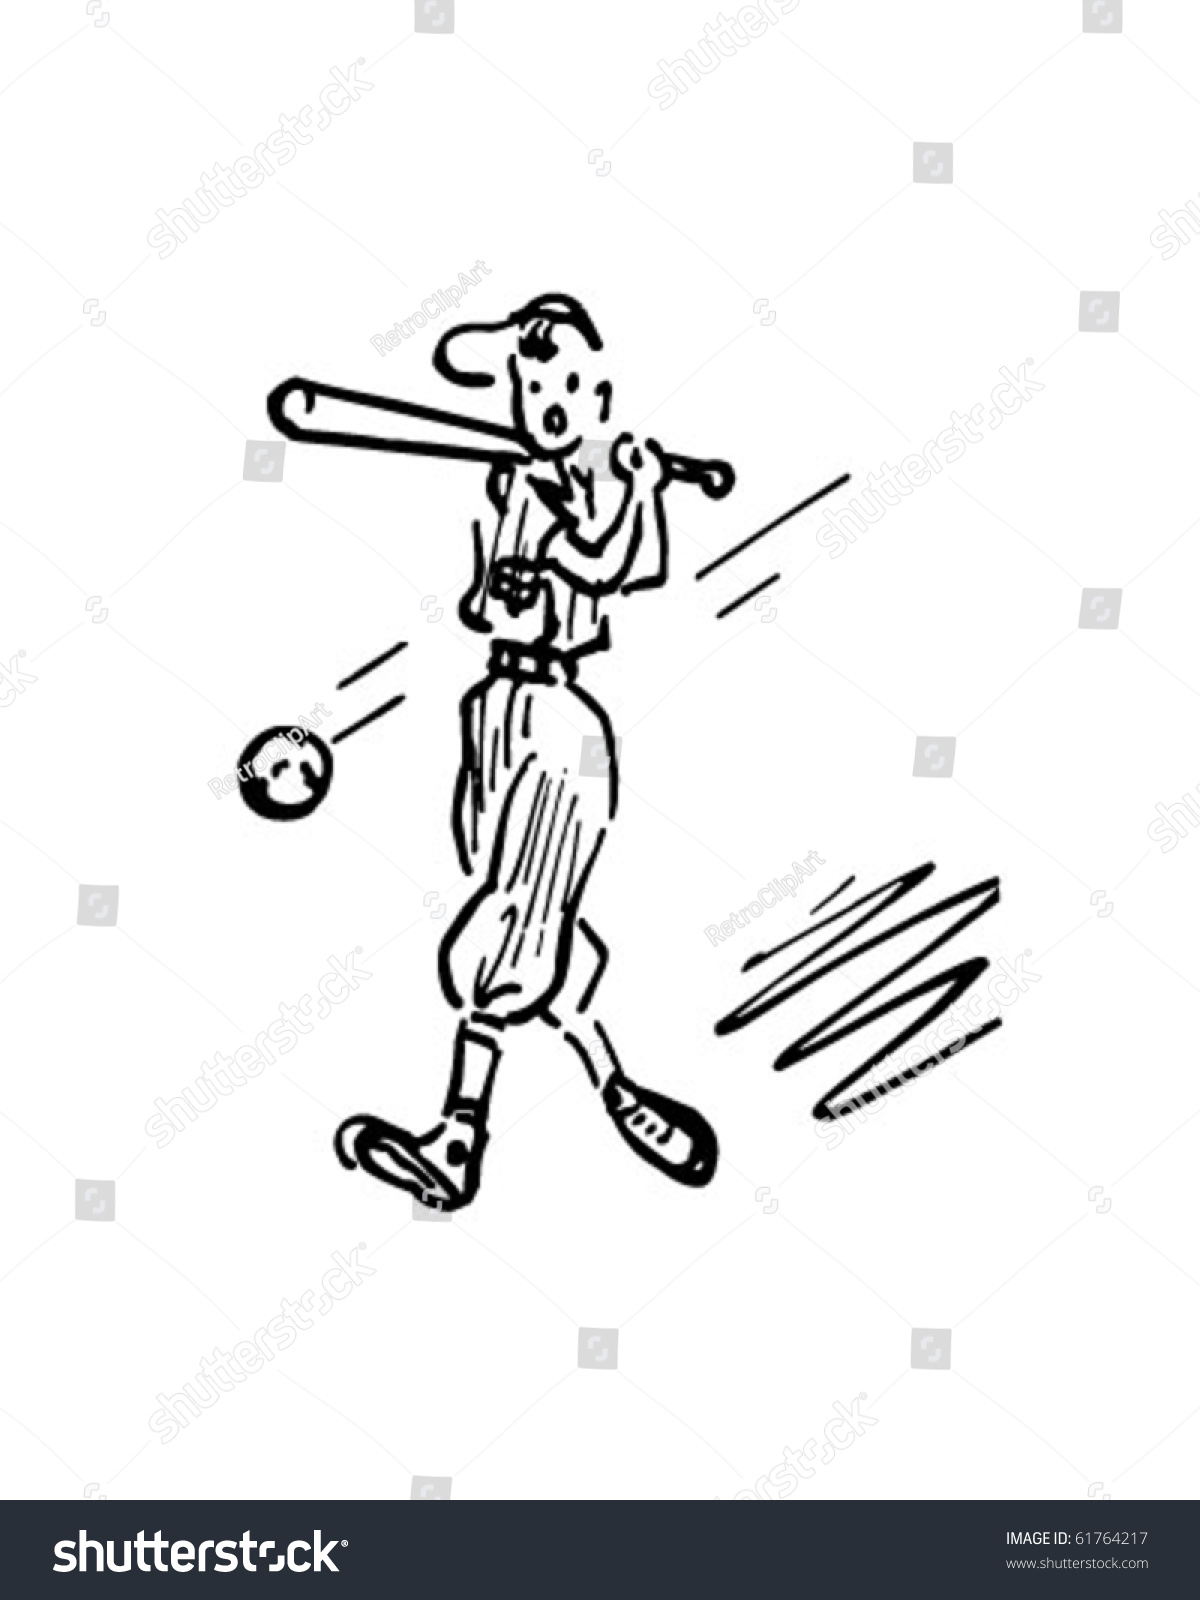 hight resolution of baseball batter retro clip art